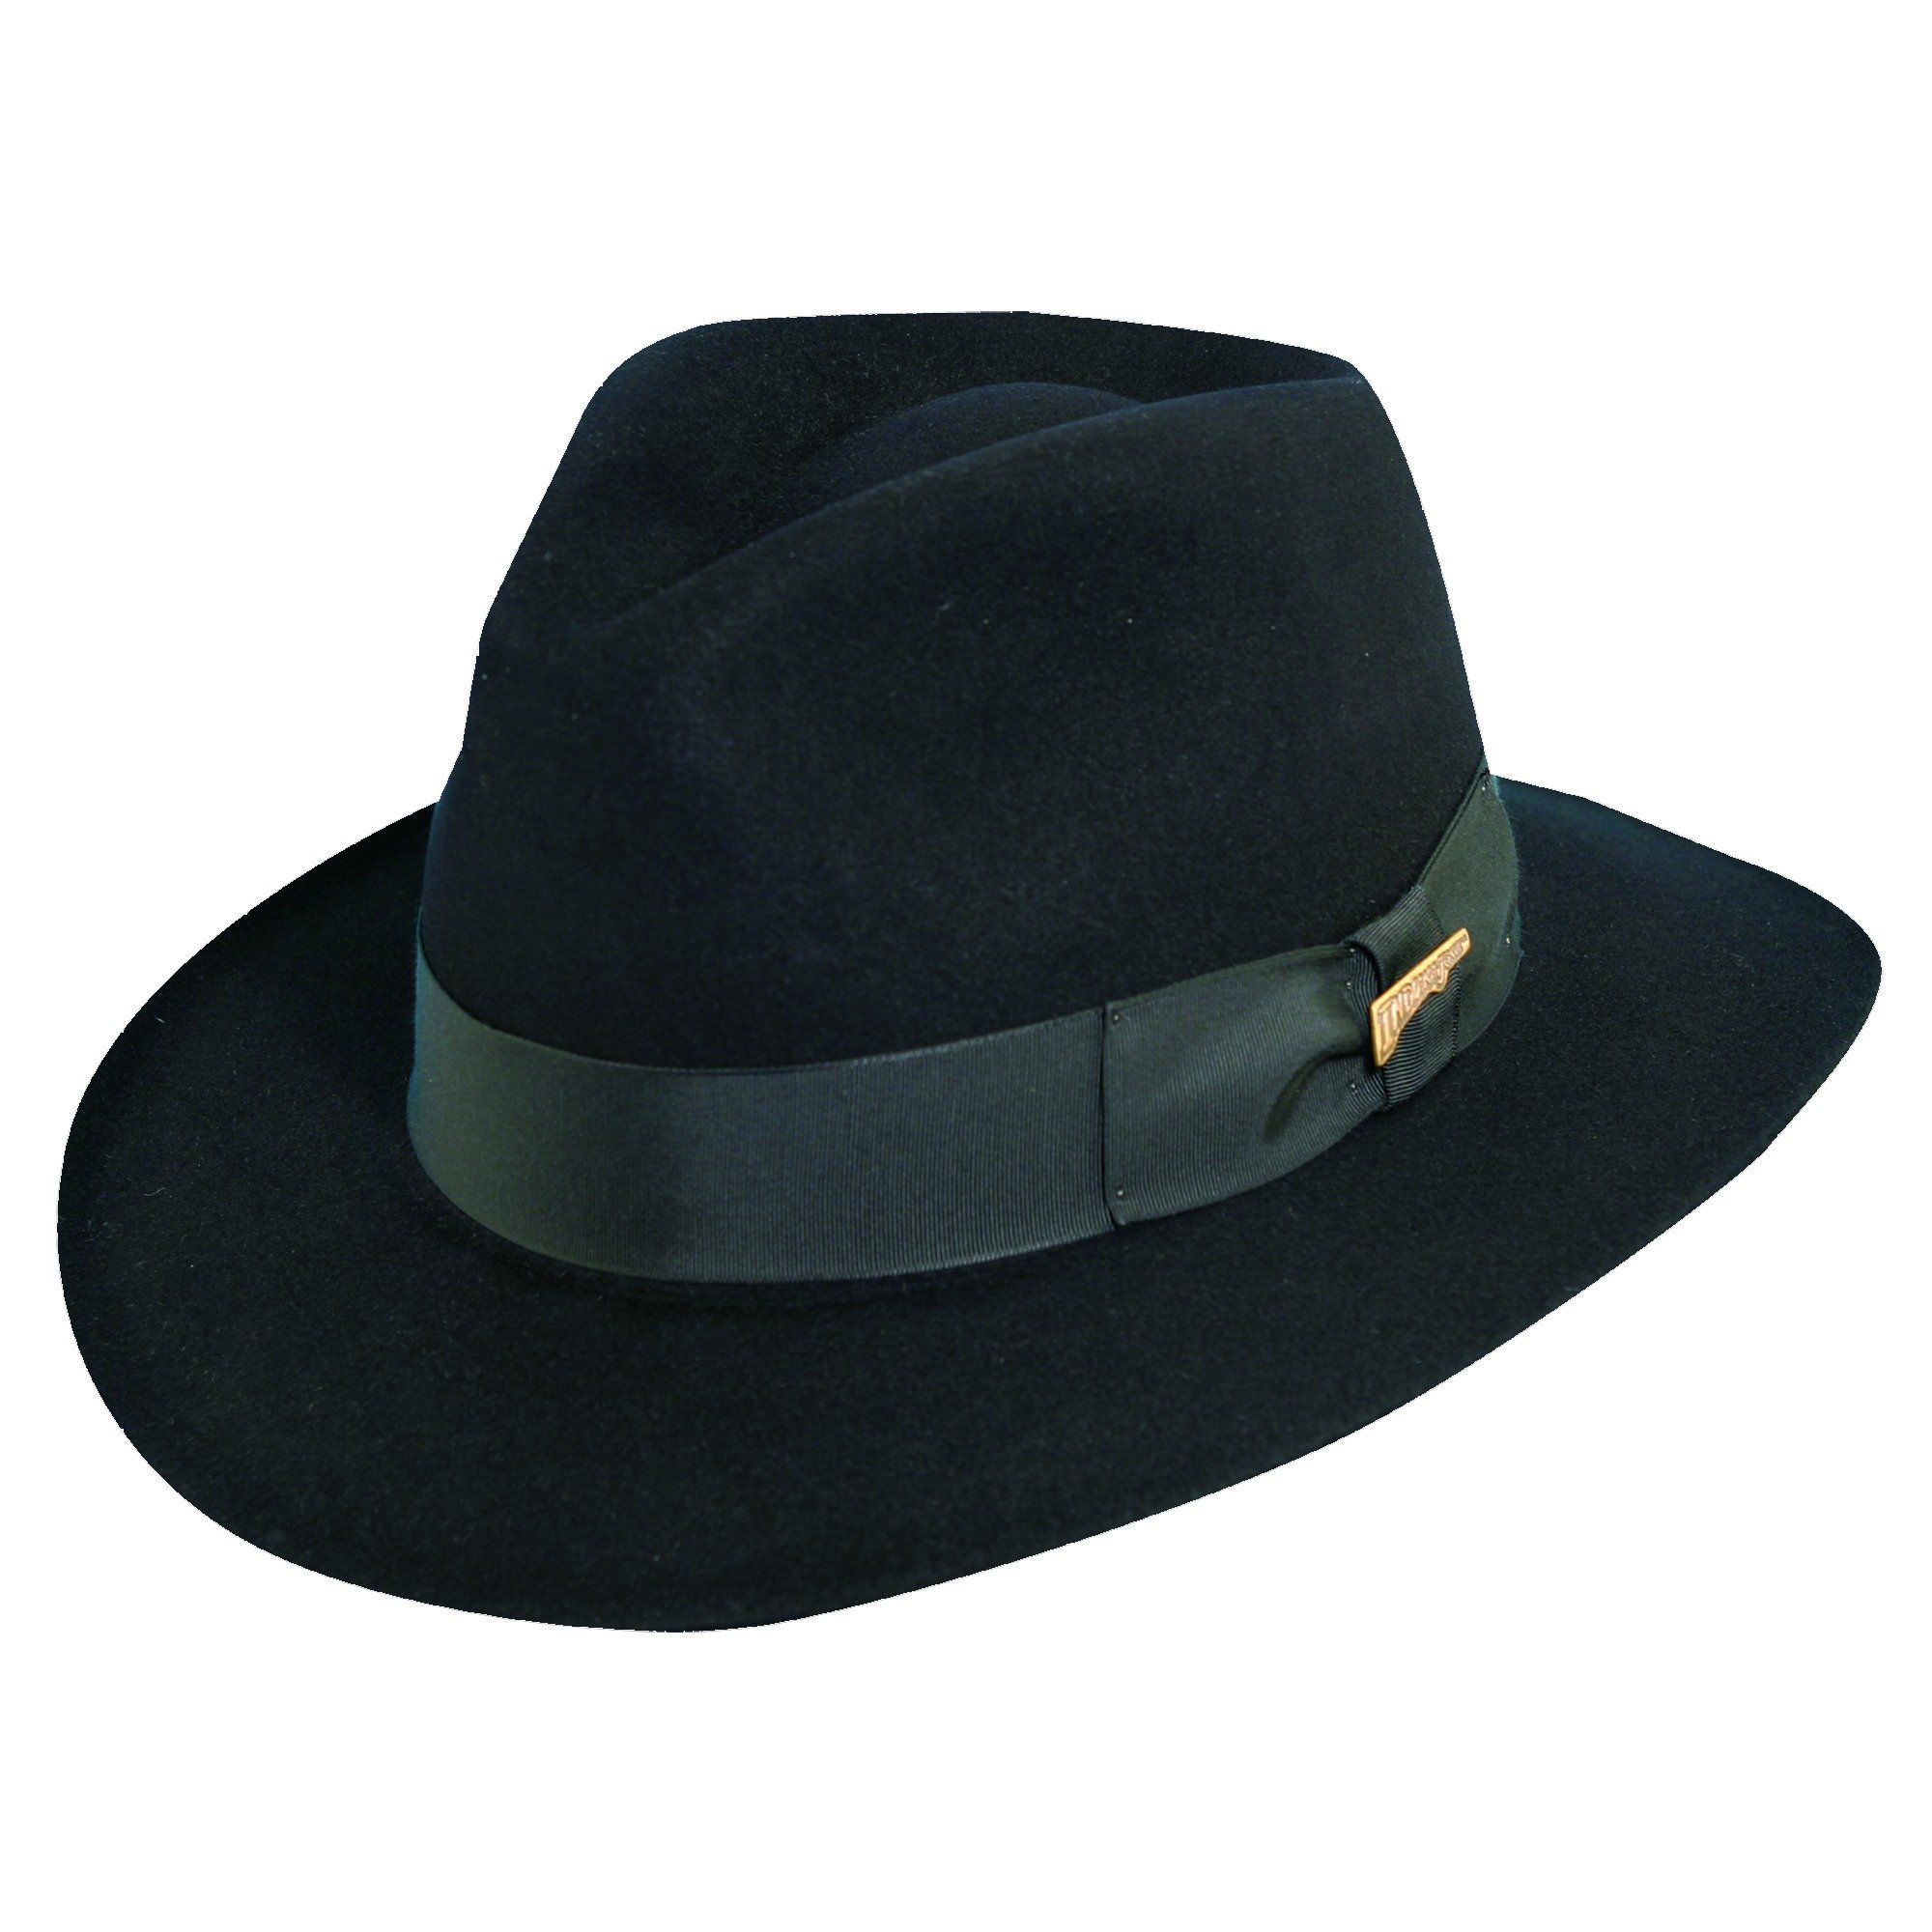 19d6aa8c This fedora hat is inspired by the Indiana Jones movie. The 2.5 inch brim  will shade the sun. The satin lining will keep you cool.